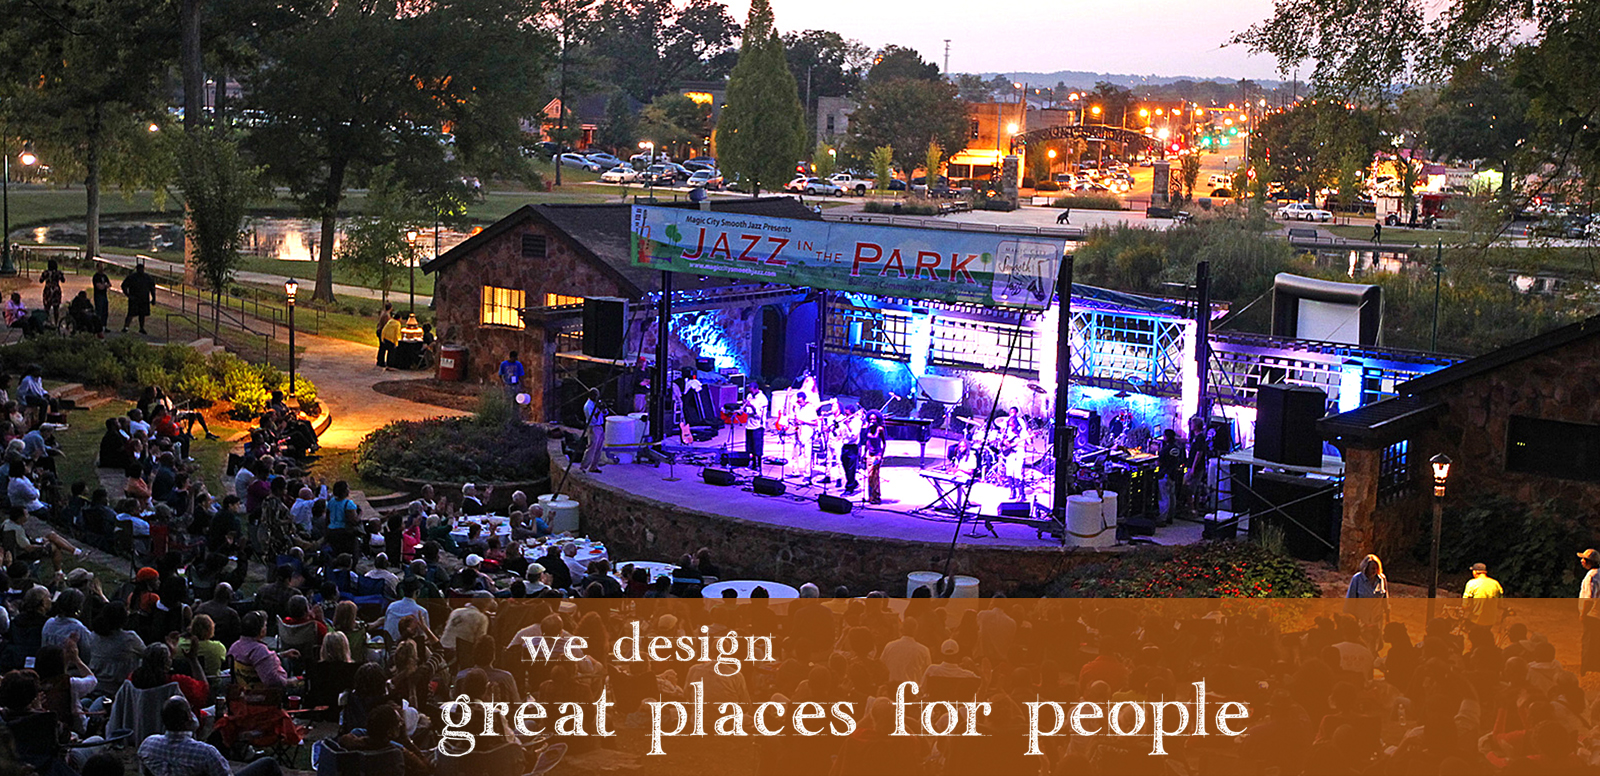 Our Work: We design great places for people